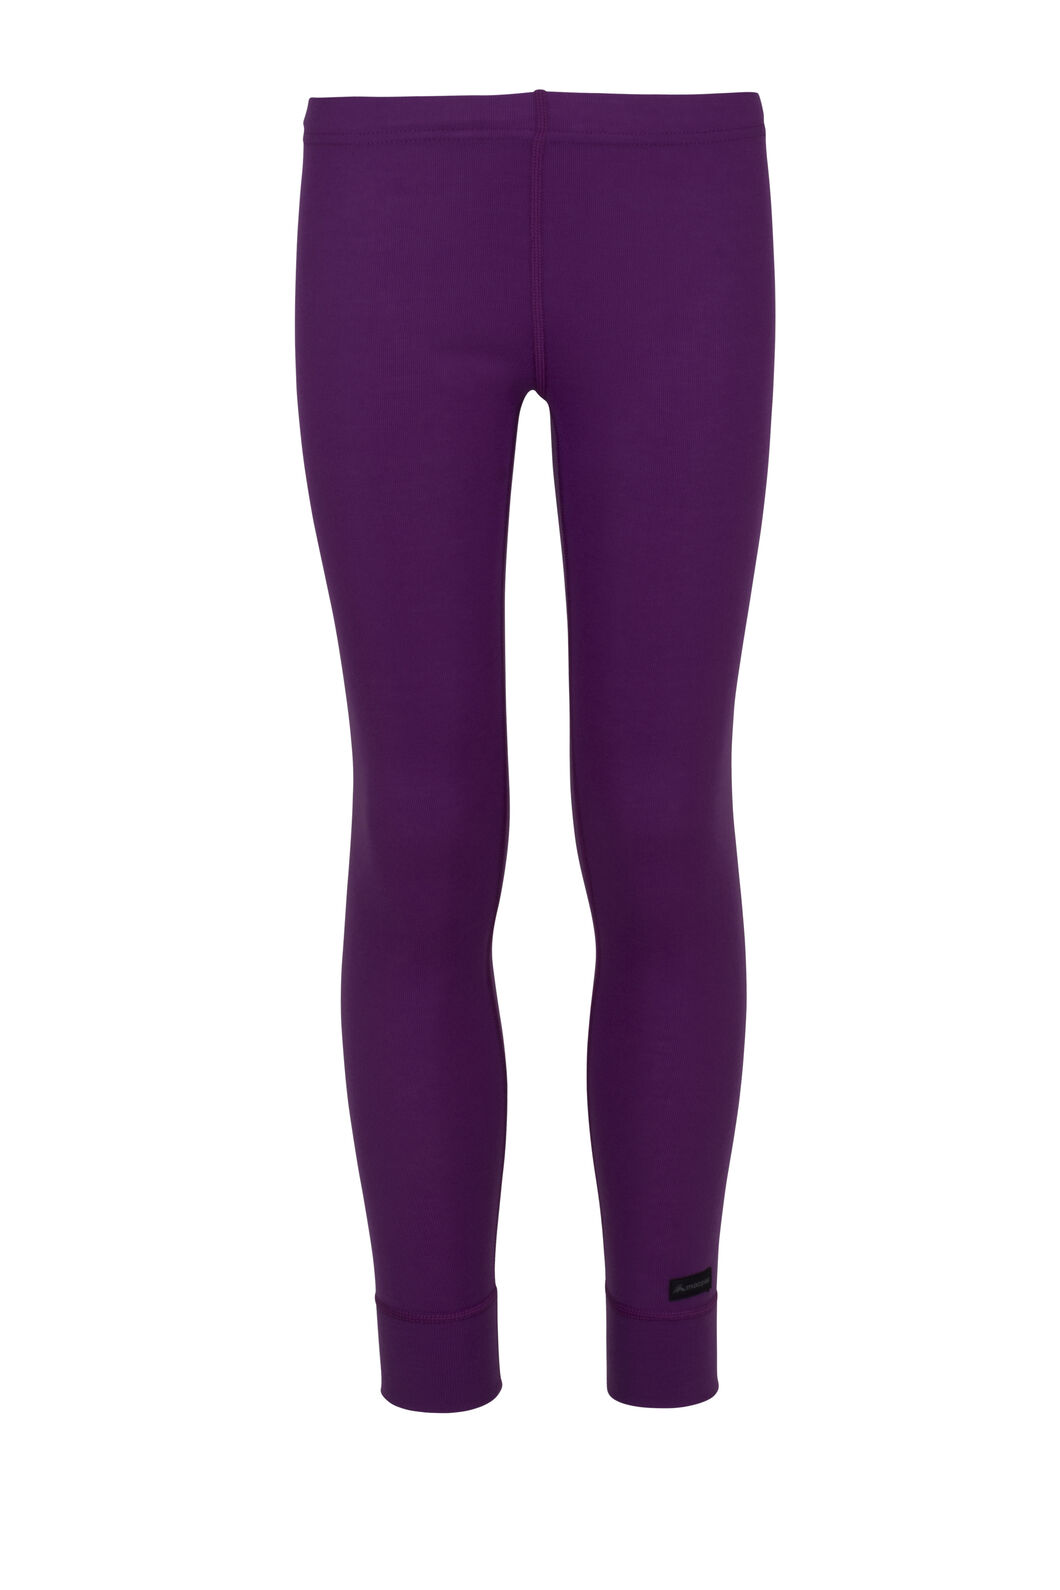 Macpac Geothermal Pants - Kids', Dahlia, hi-res